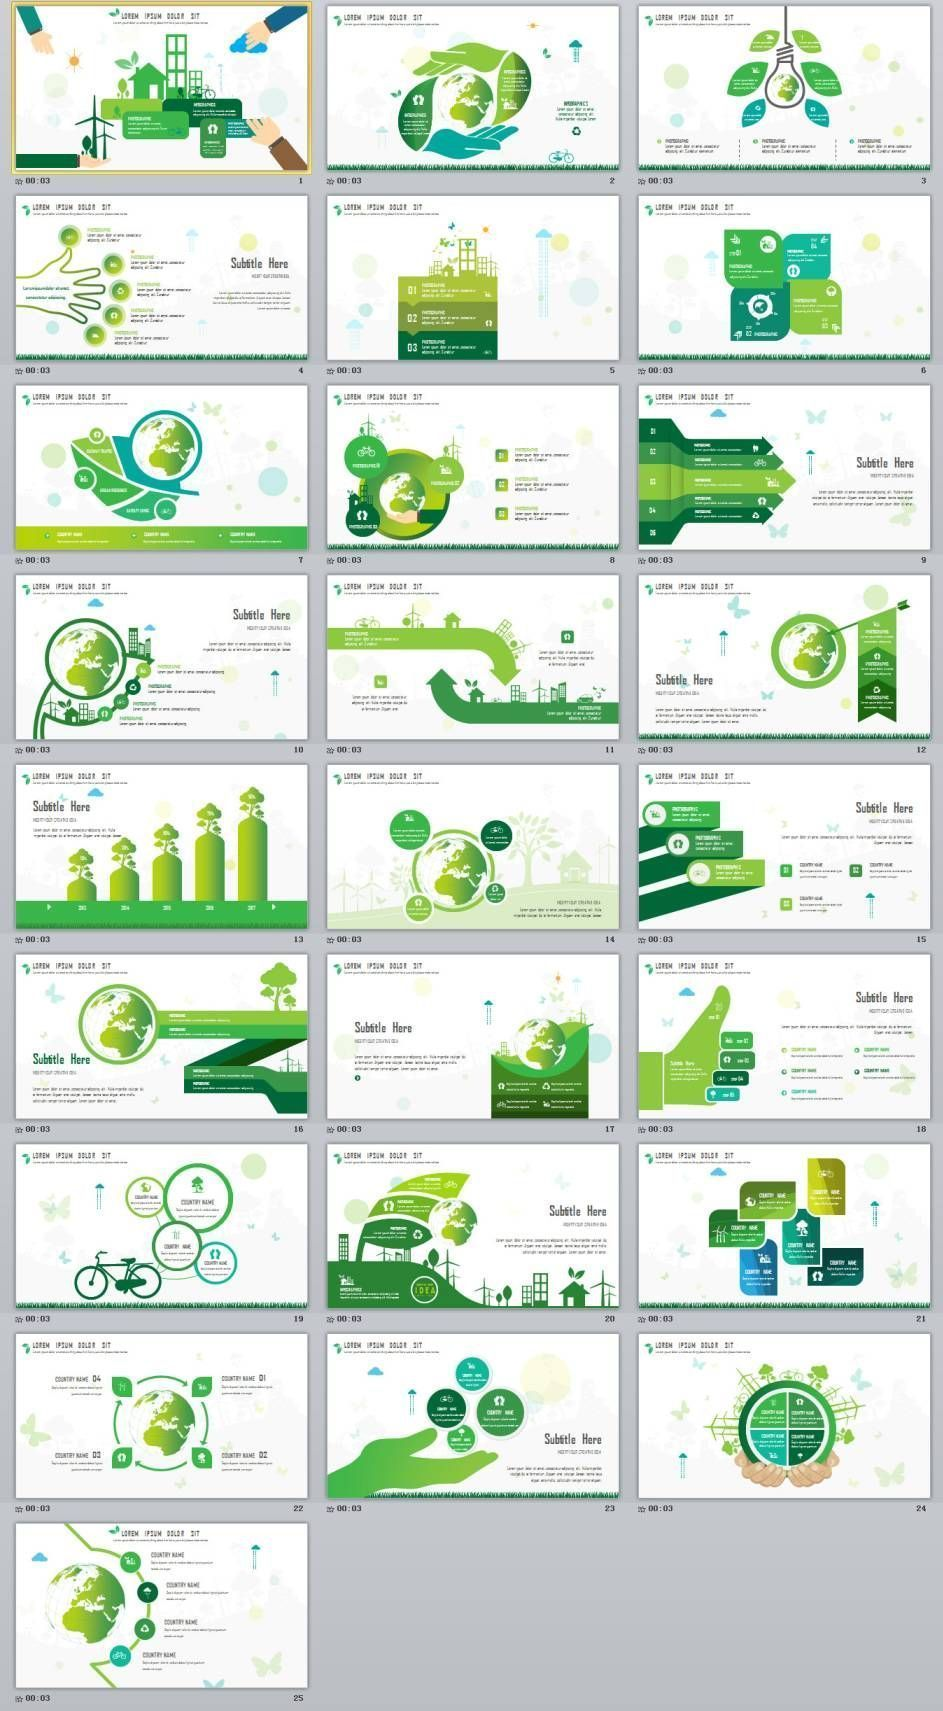 25 green chart slides powerpoint templates financetemplate 25 green chart slides powerpoint templates financetemplate financebackground toneelgroepblik Choice Image